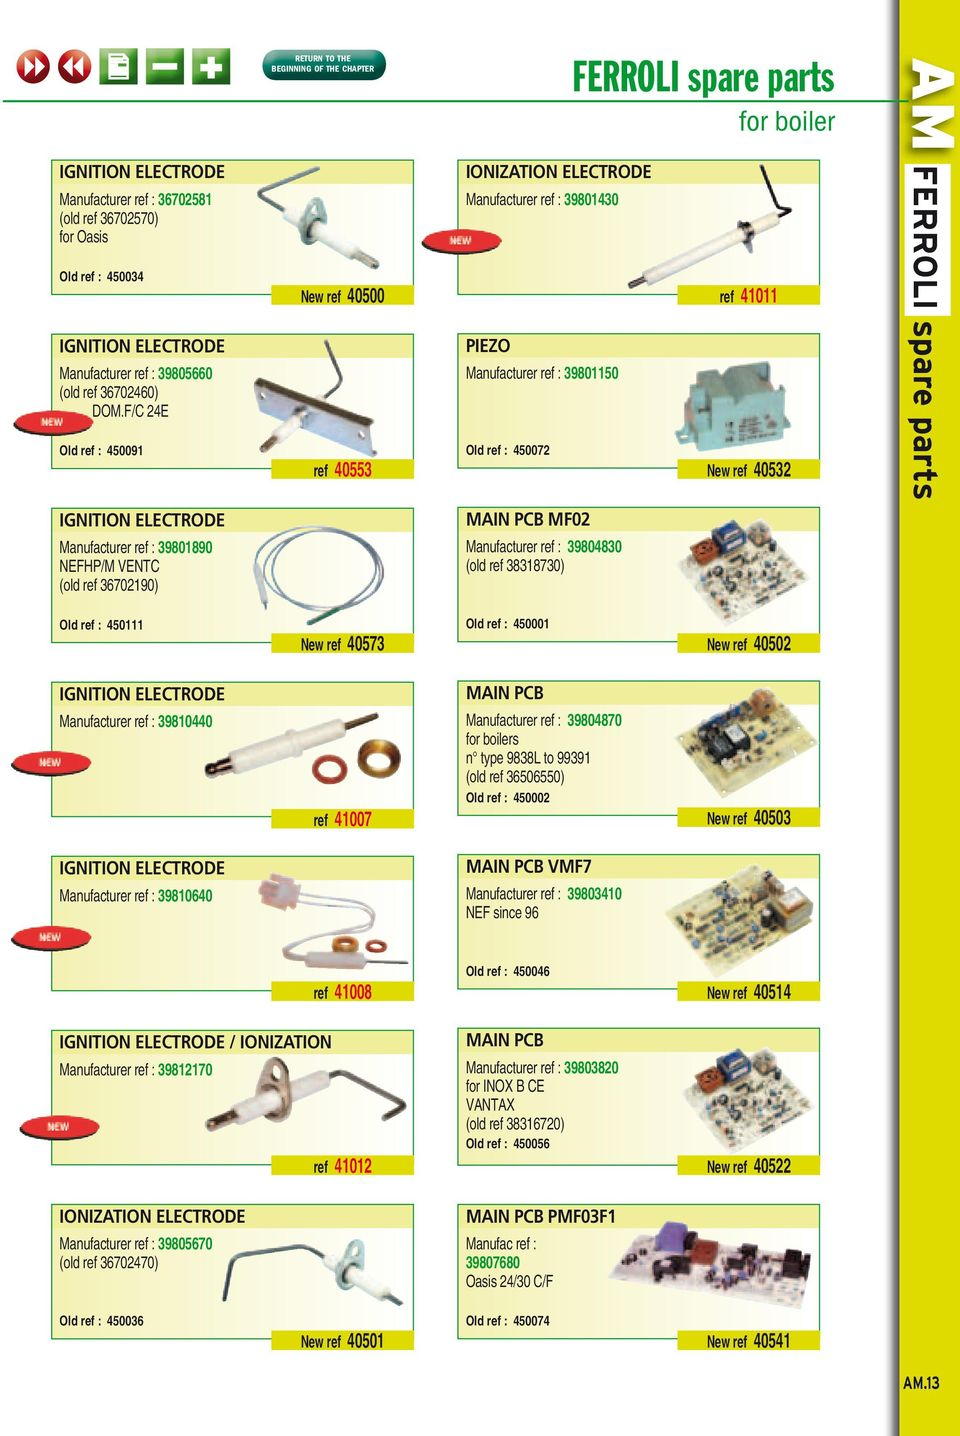 FERROLI Main PCB VMF7. Other spare. parts for wall gas boilers. see ...